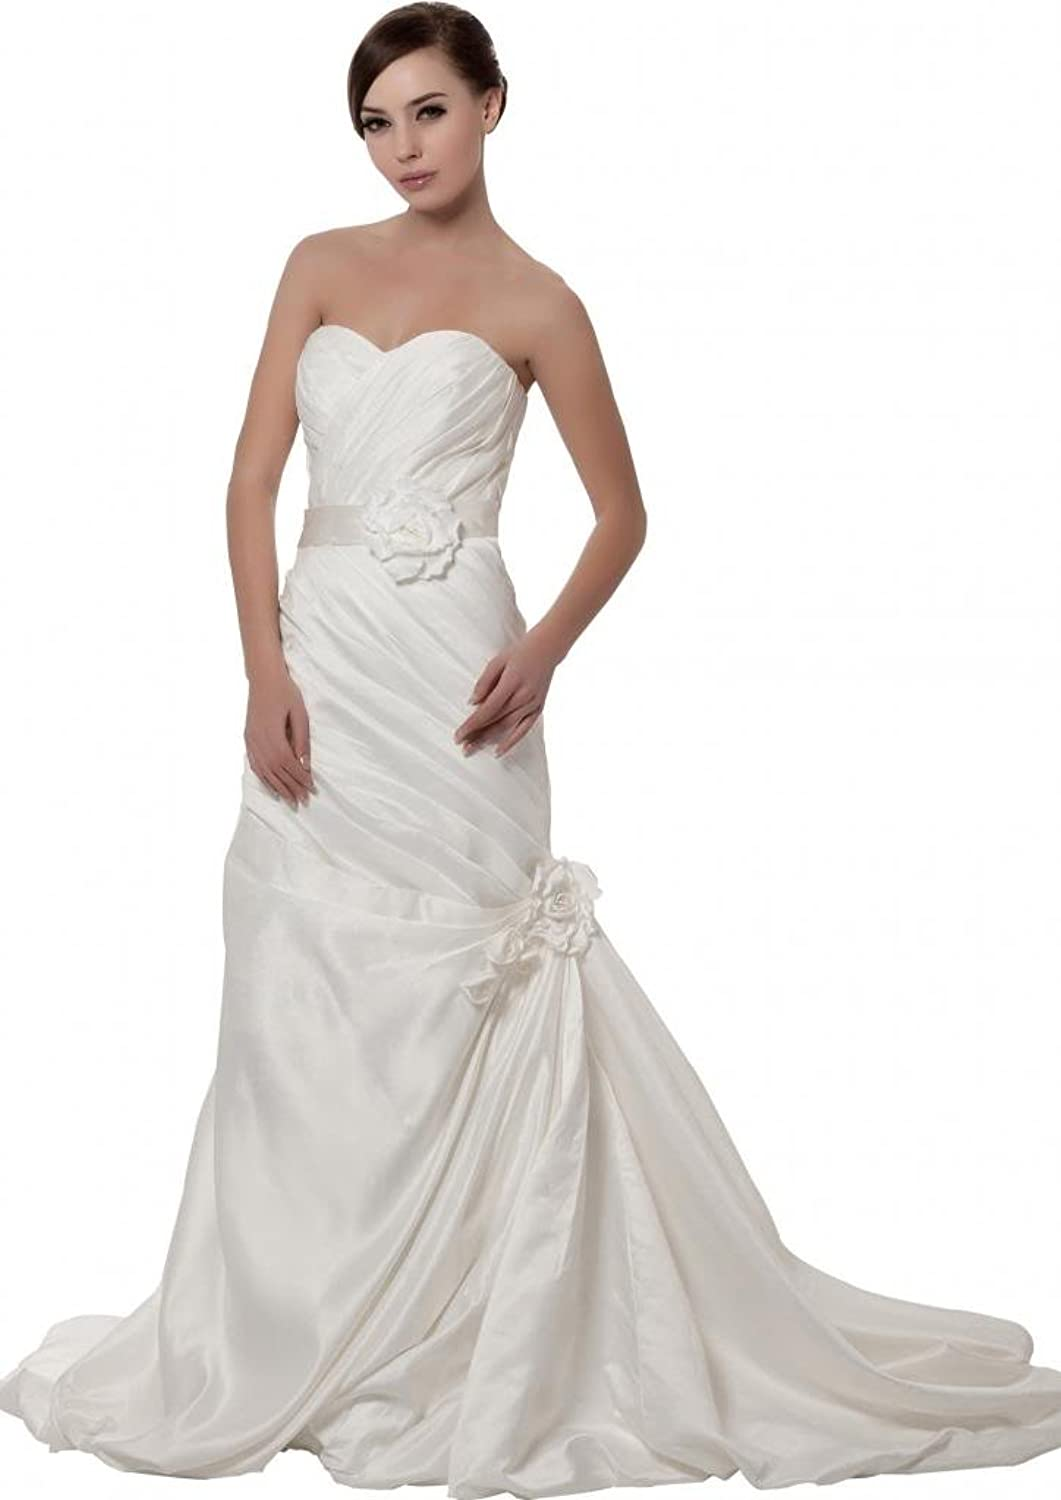 GEORGE BRIDE Elegant Strapless Pleated Satin Wedding Dress